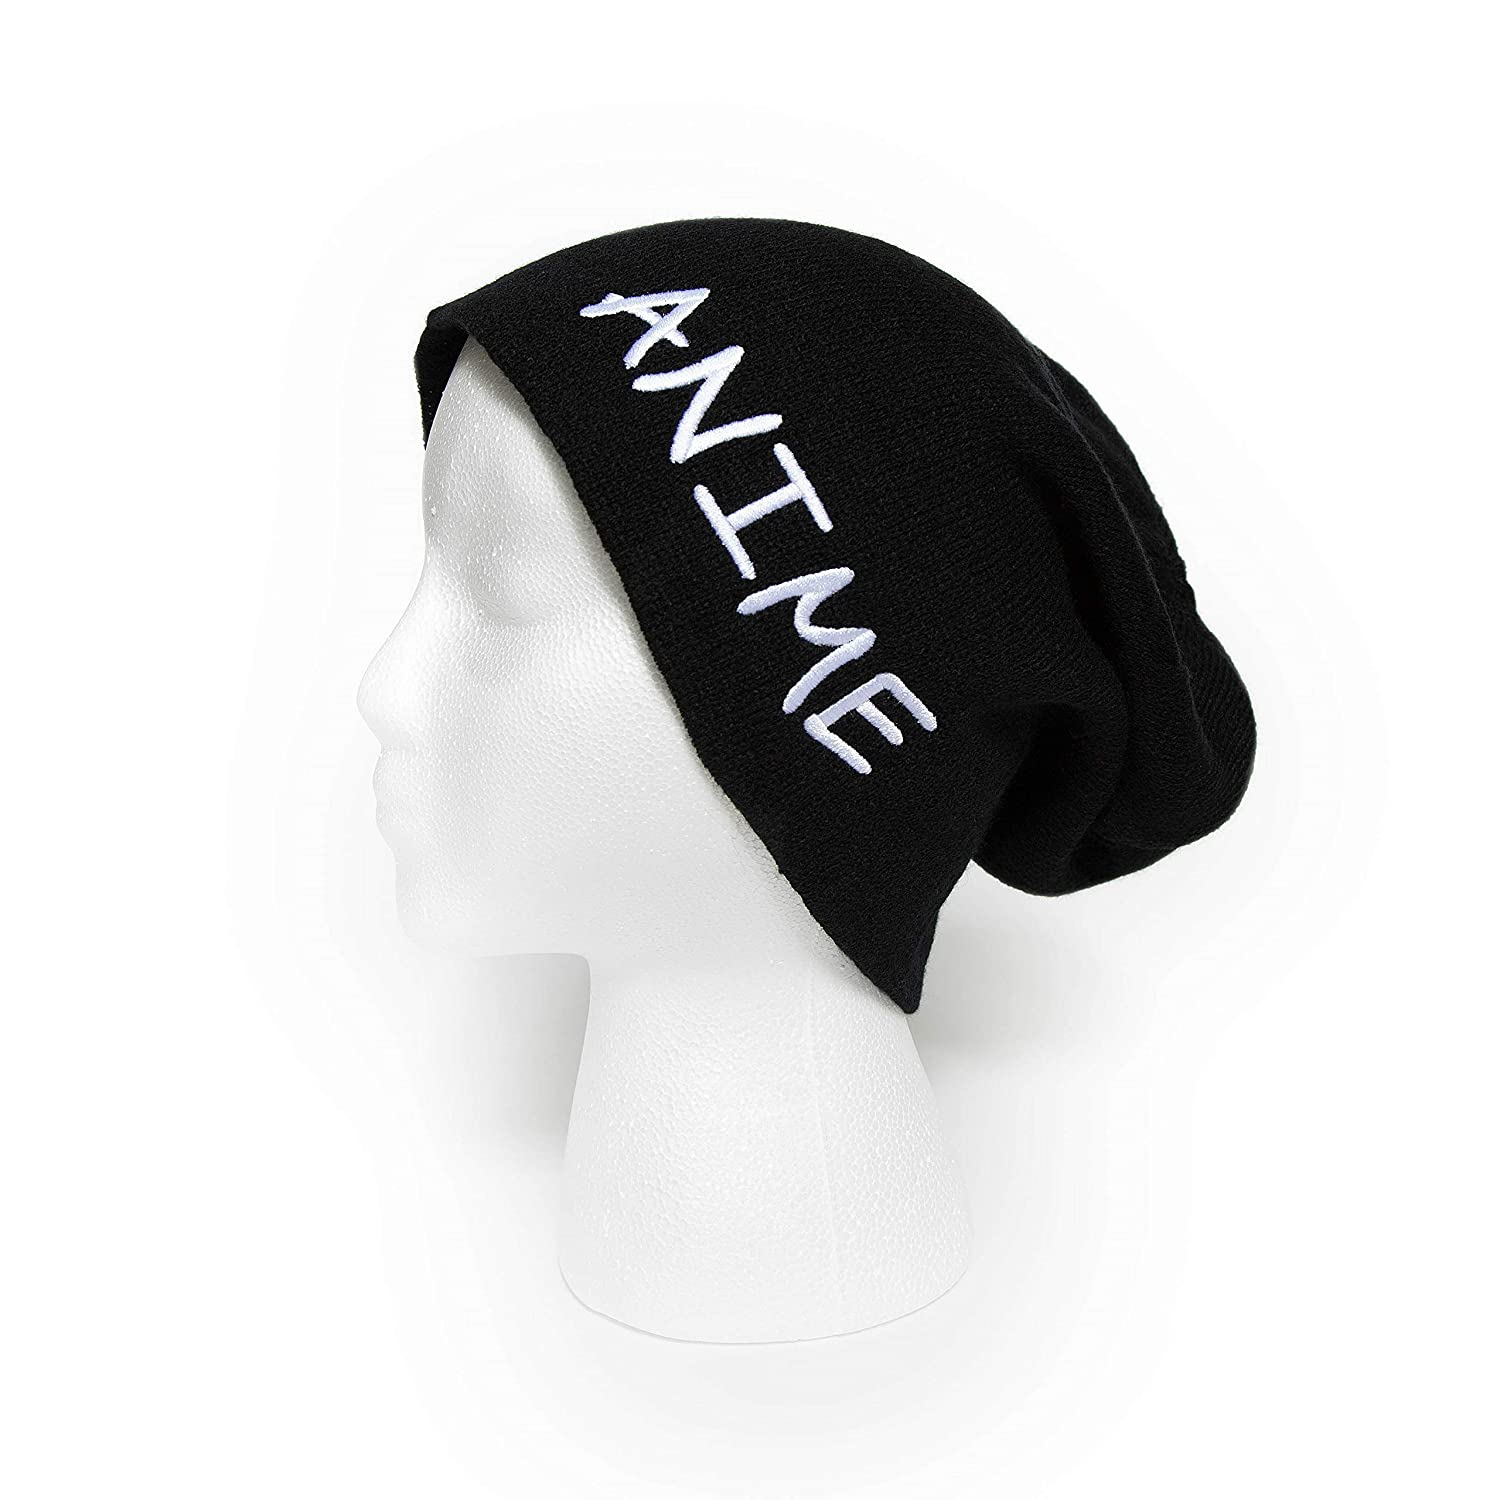 dcfdedafd15 Amazon.com  Anime Slouchy Beanie Embroidered Winter Hat Men Women Oversized  Knit Cap  Clothing